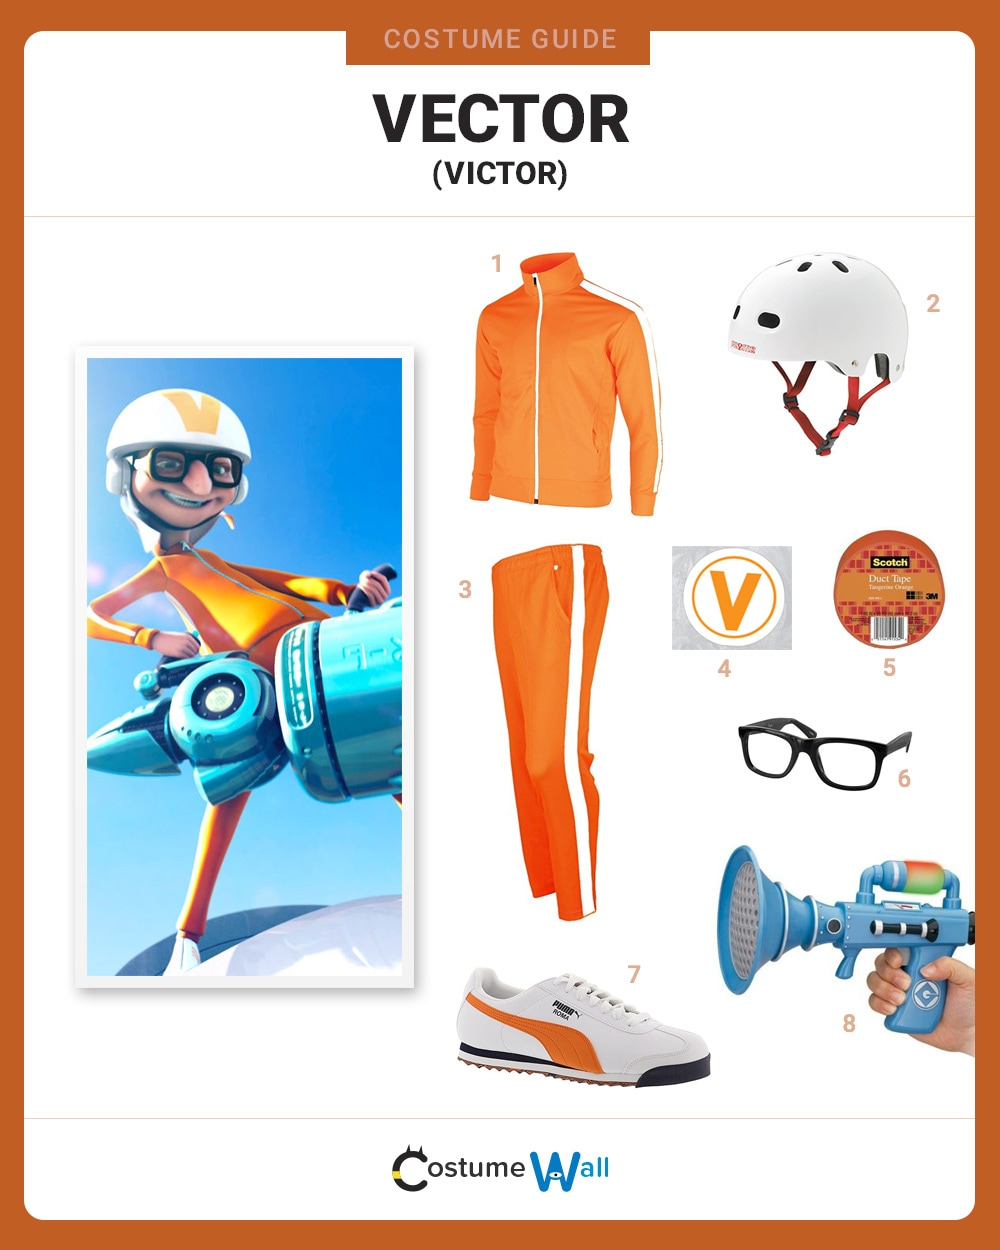 1000x1250 Dress Like Vector Costume Halloween And Cosplay Guides